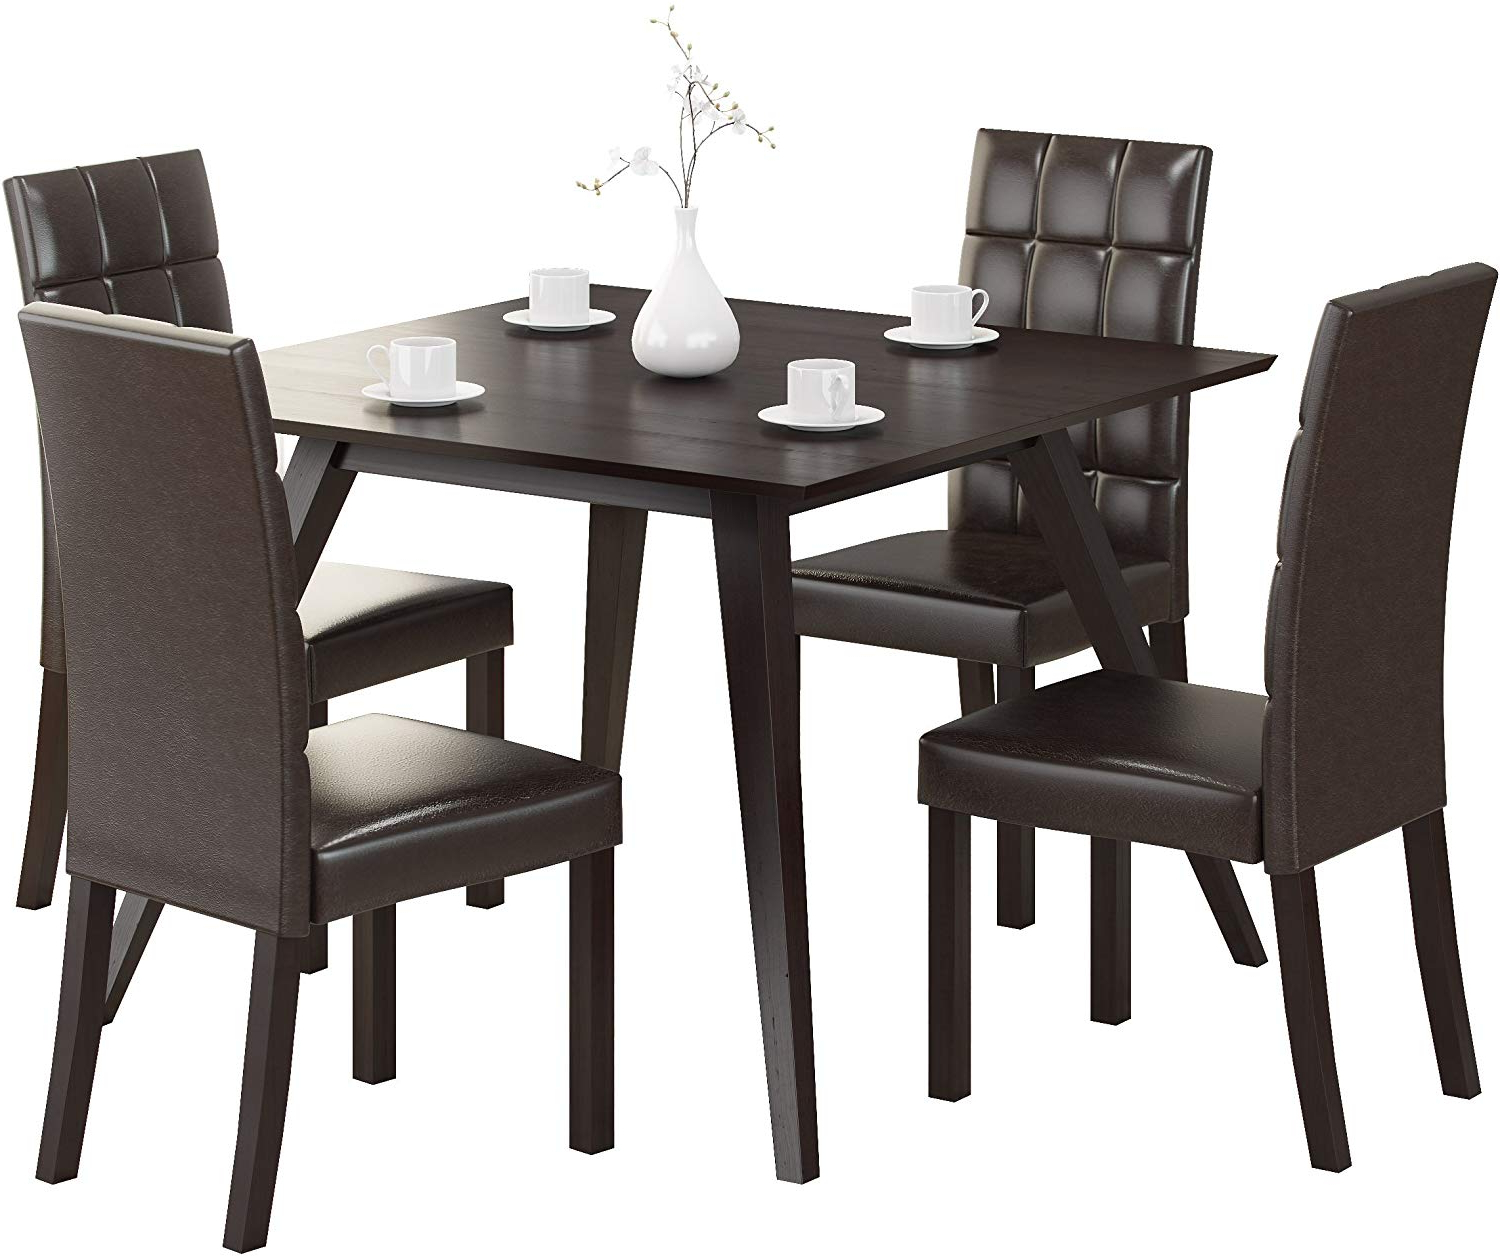 Most Recent Atwood Transitional Rectangular Dining Tables With Regard To Corliving Atwood Dining Set, Dark Brown (View 3 of 30)